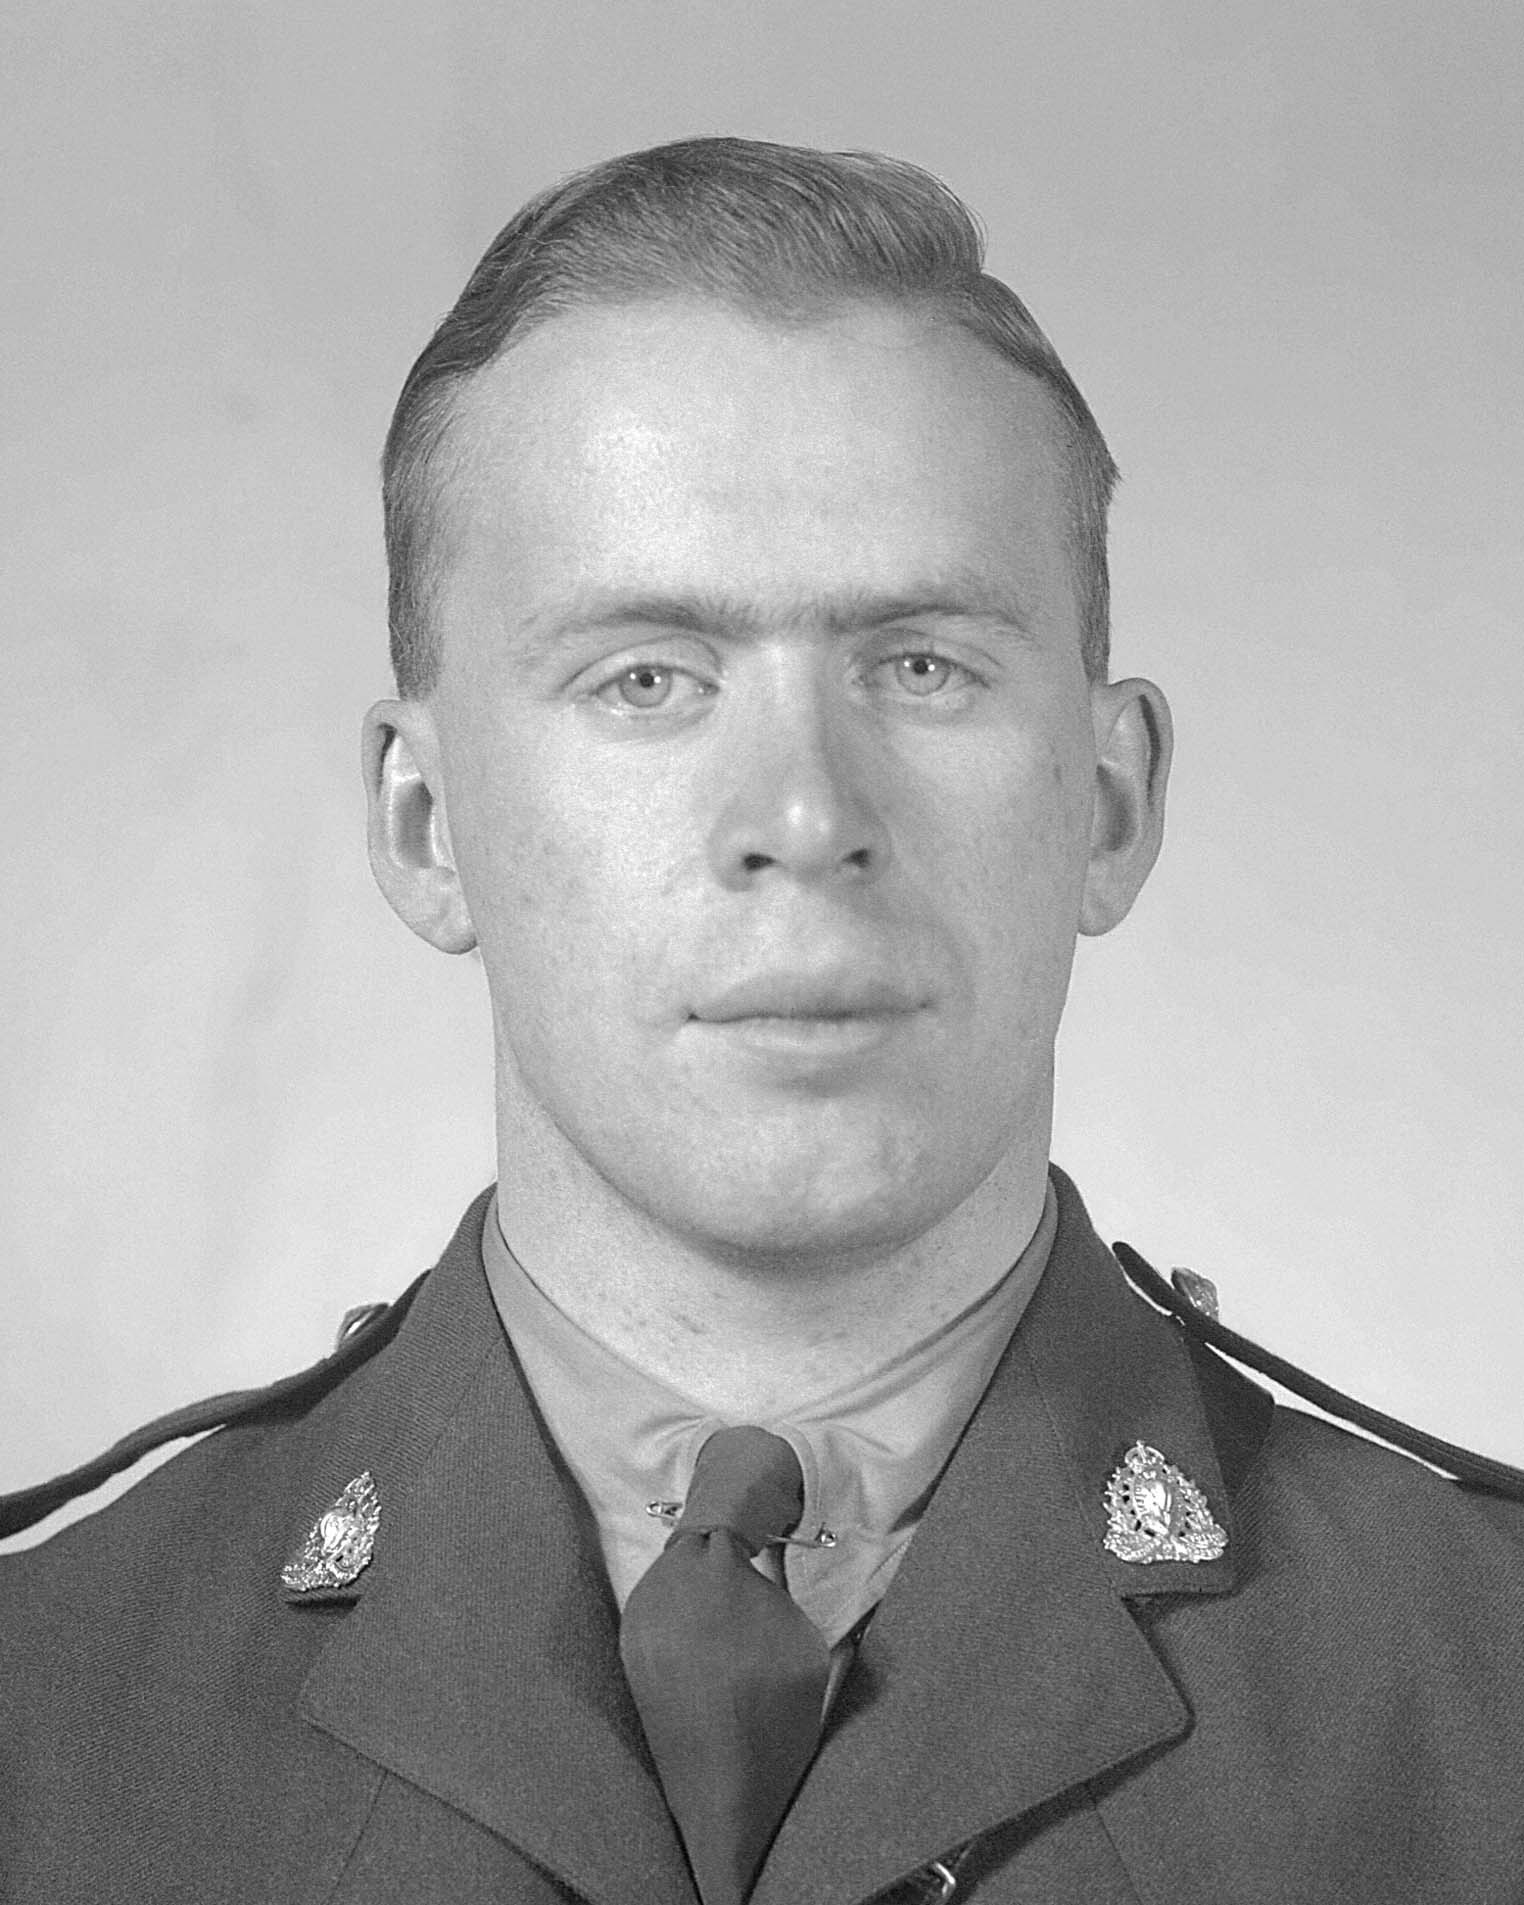 Corporal Herbert Milton Smart– © Her Majesty the Queen in Right of Canada as represented by the Royal Canadian Mounted Police